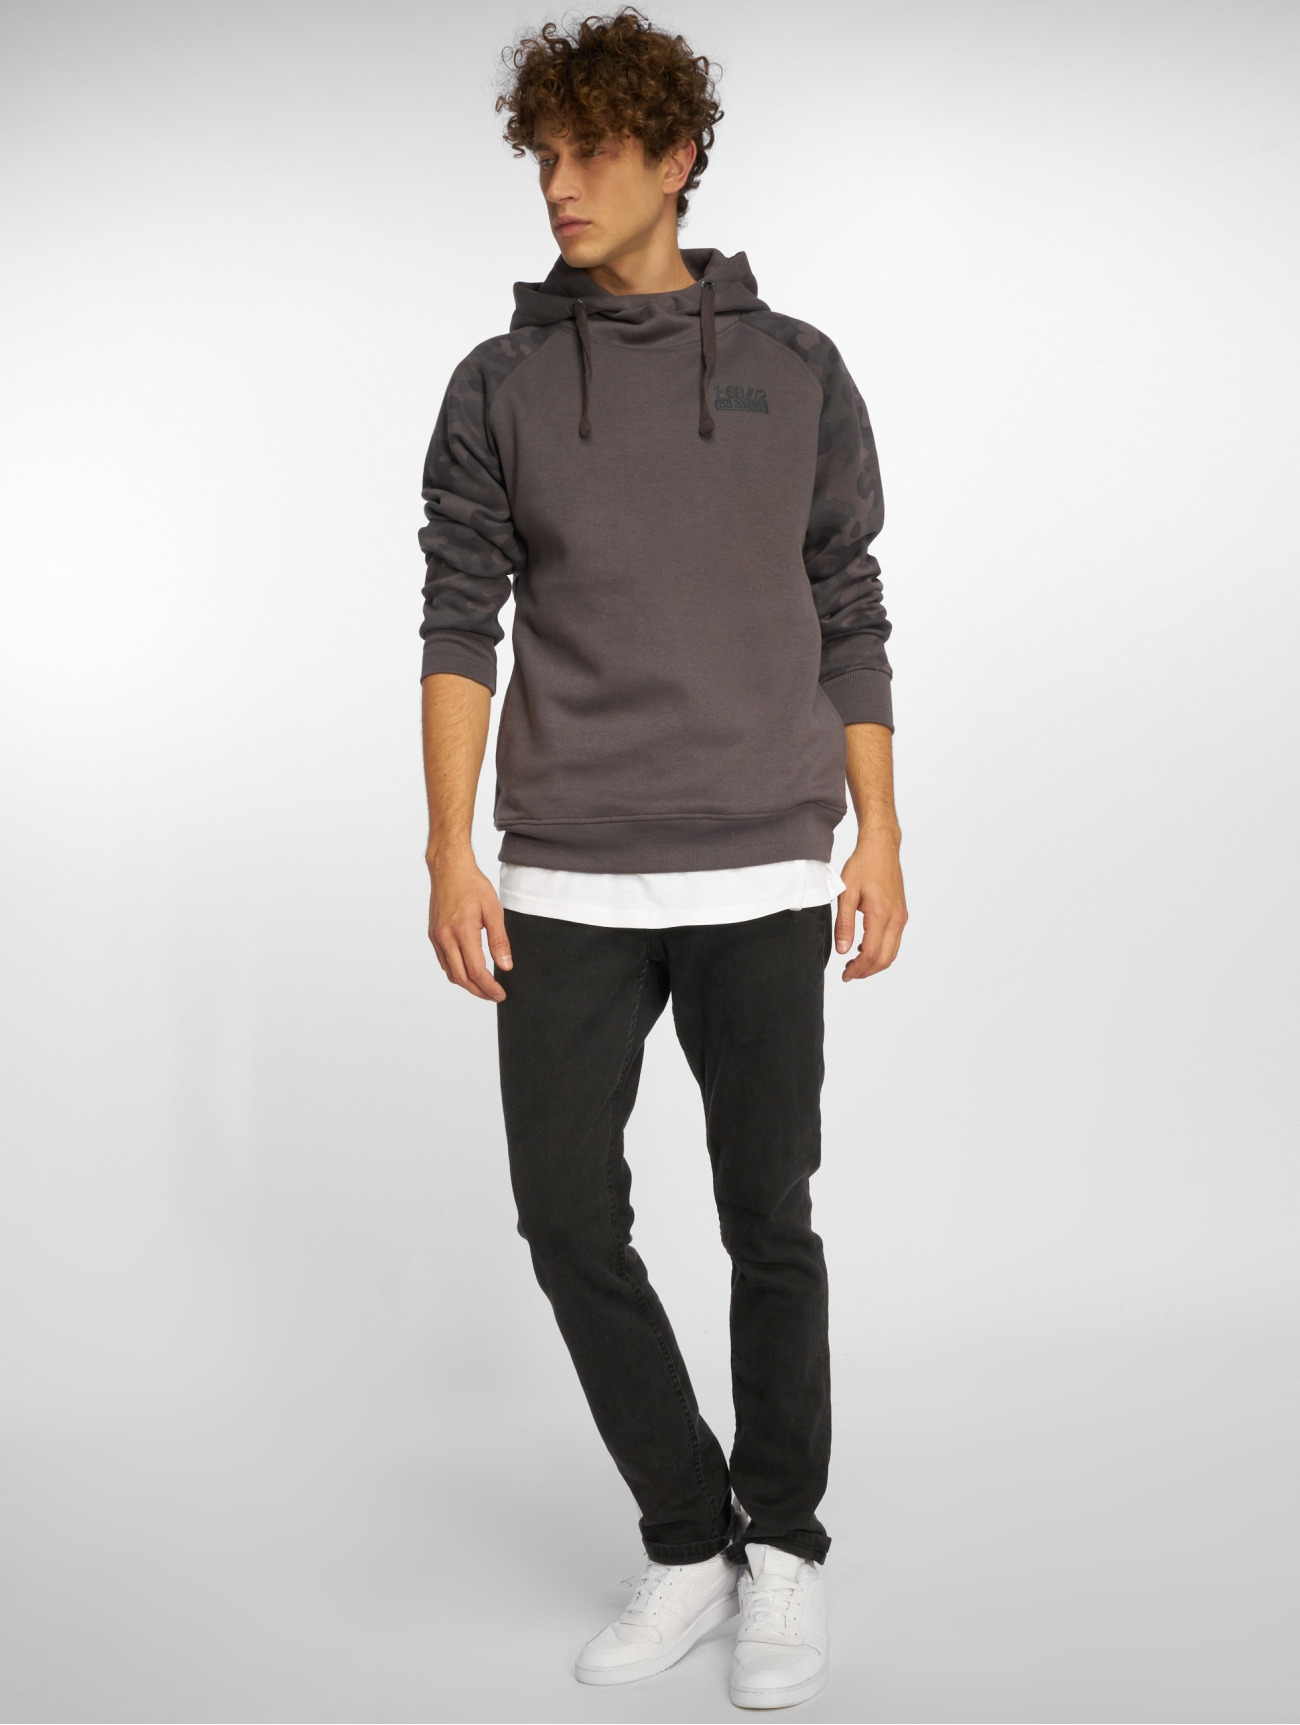 Sublevel |  Iron  gris Homme Sweat capuche  593424| Homme Hauts